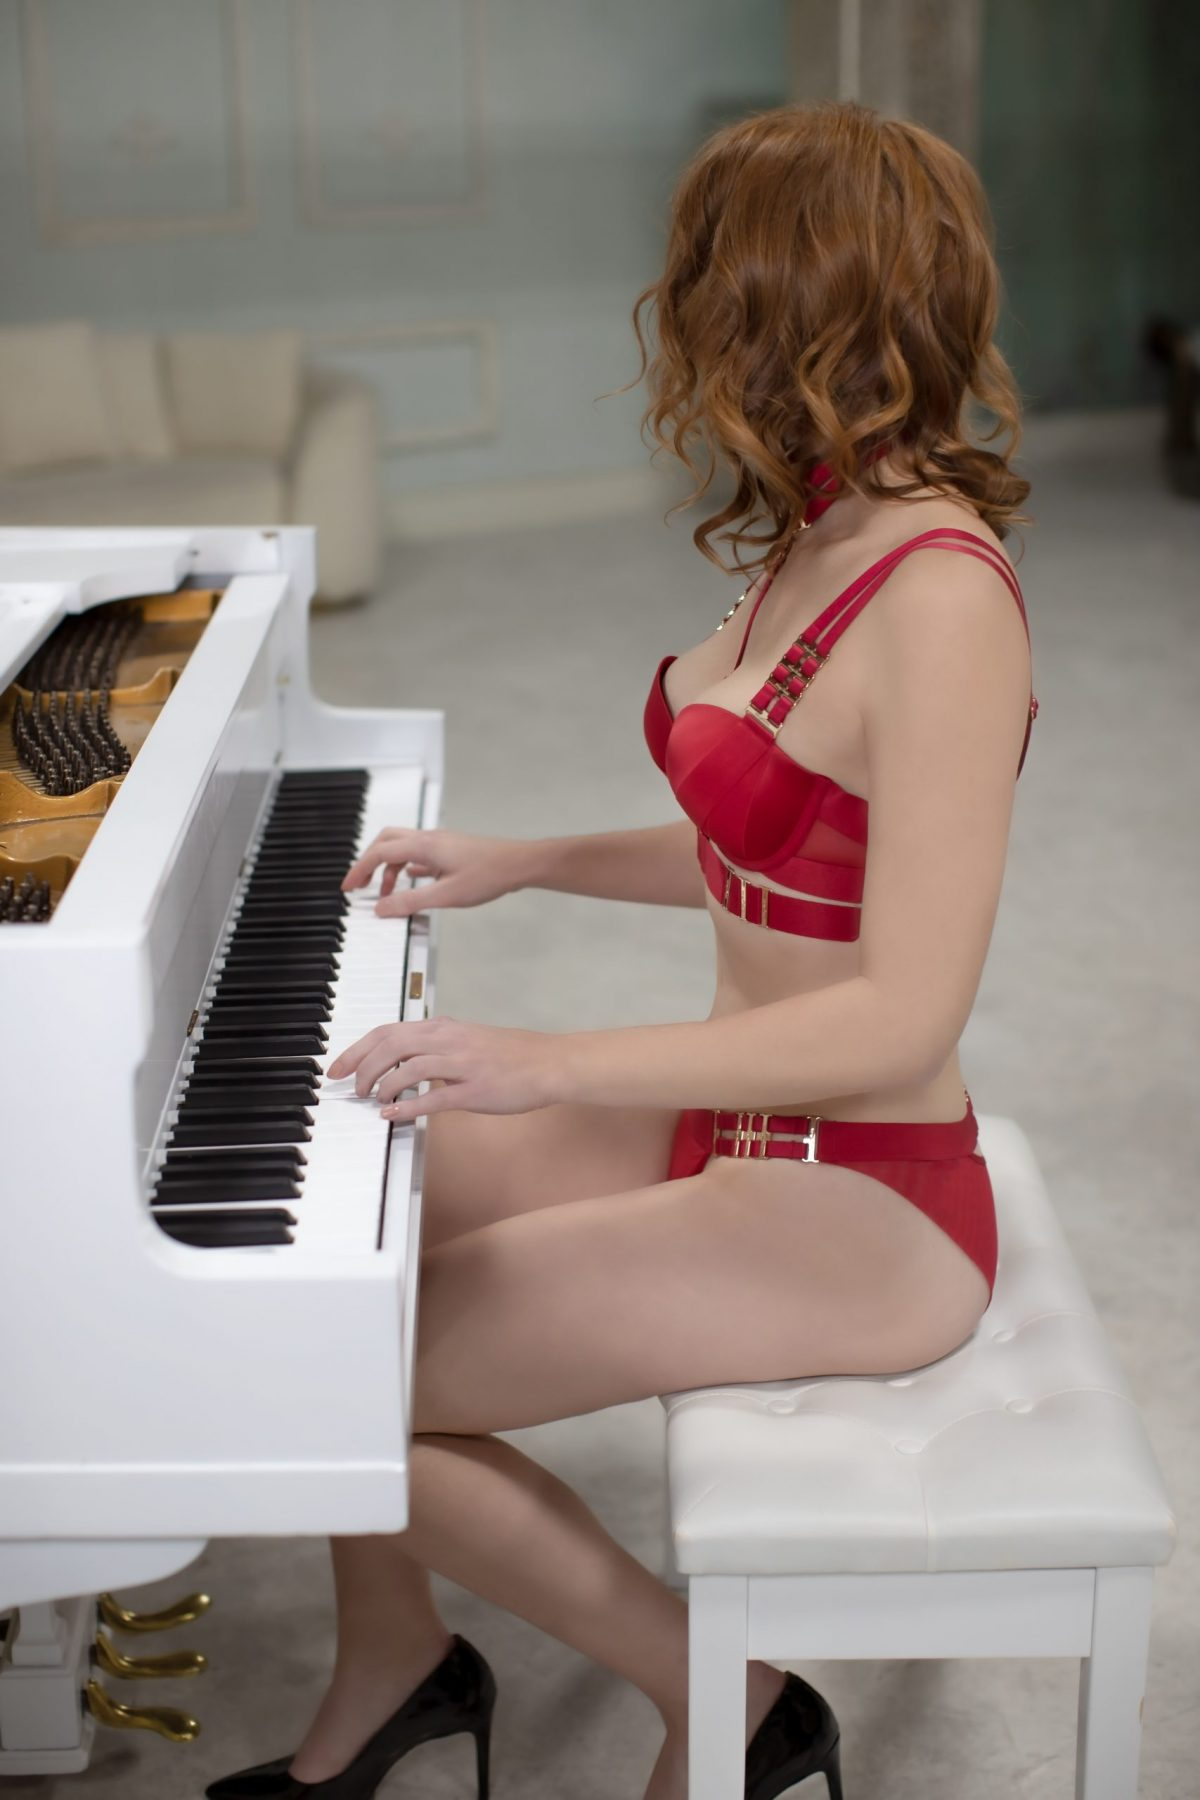 Toronto escorts companion upscale Danielle Interests Duo Non-smoking Age Mature Figure Slender Tall Breasts Natural Hair Redhead Ethnicity European Tattoos None Arrival